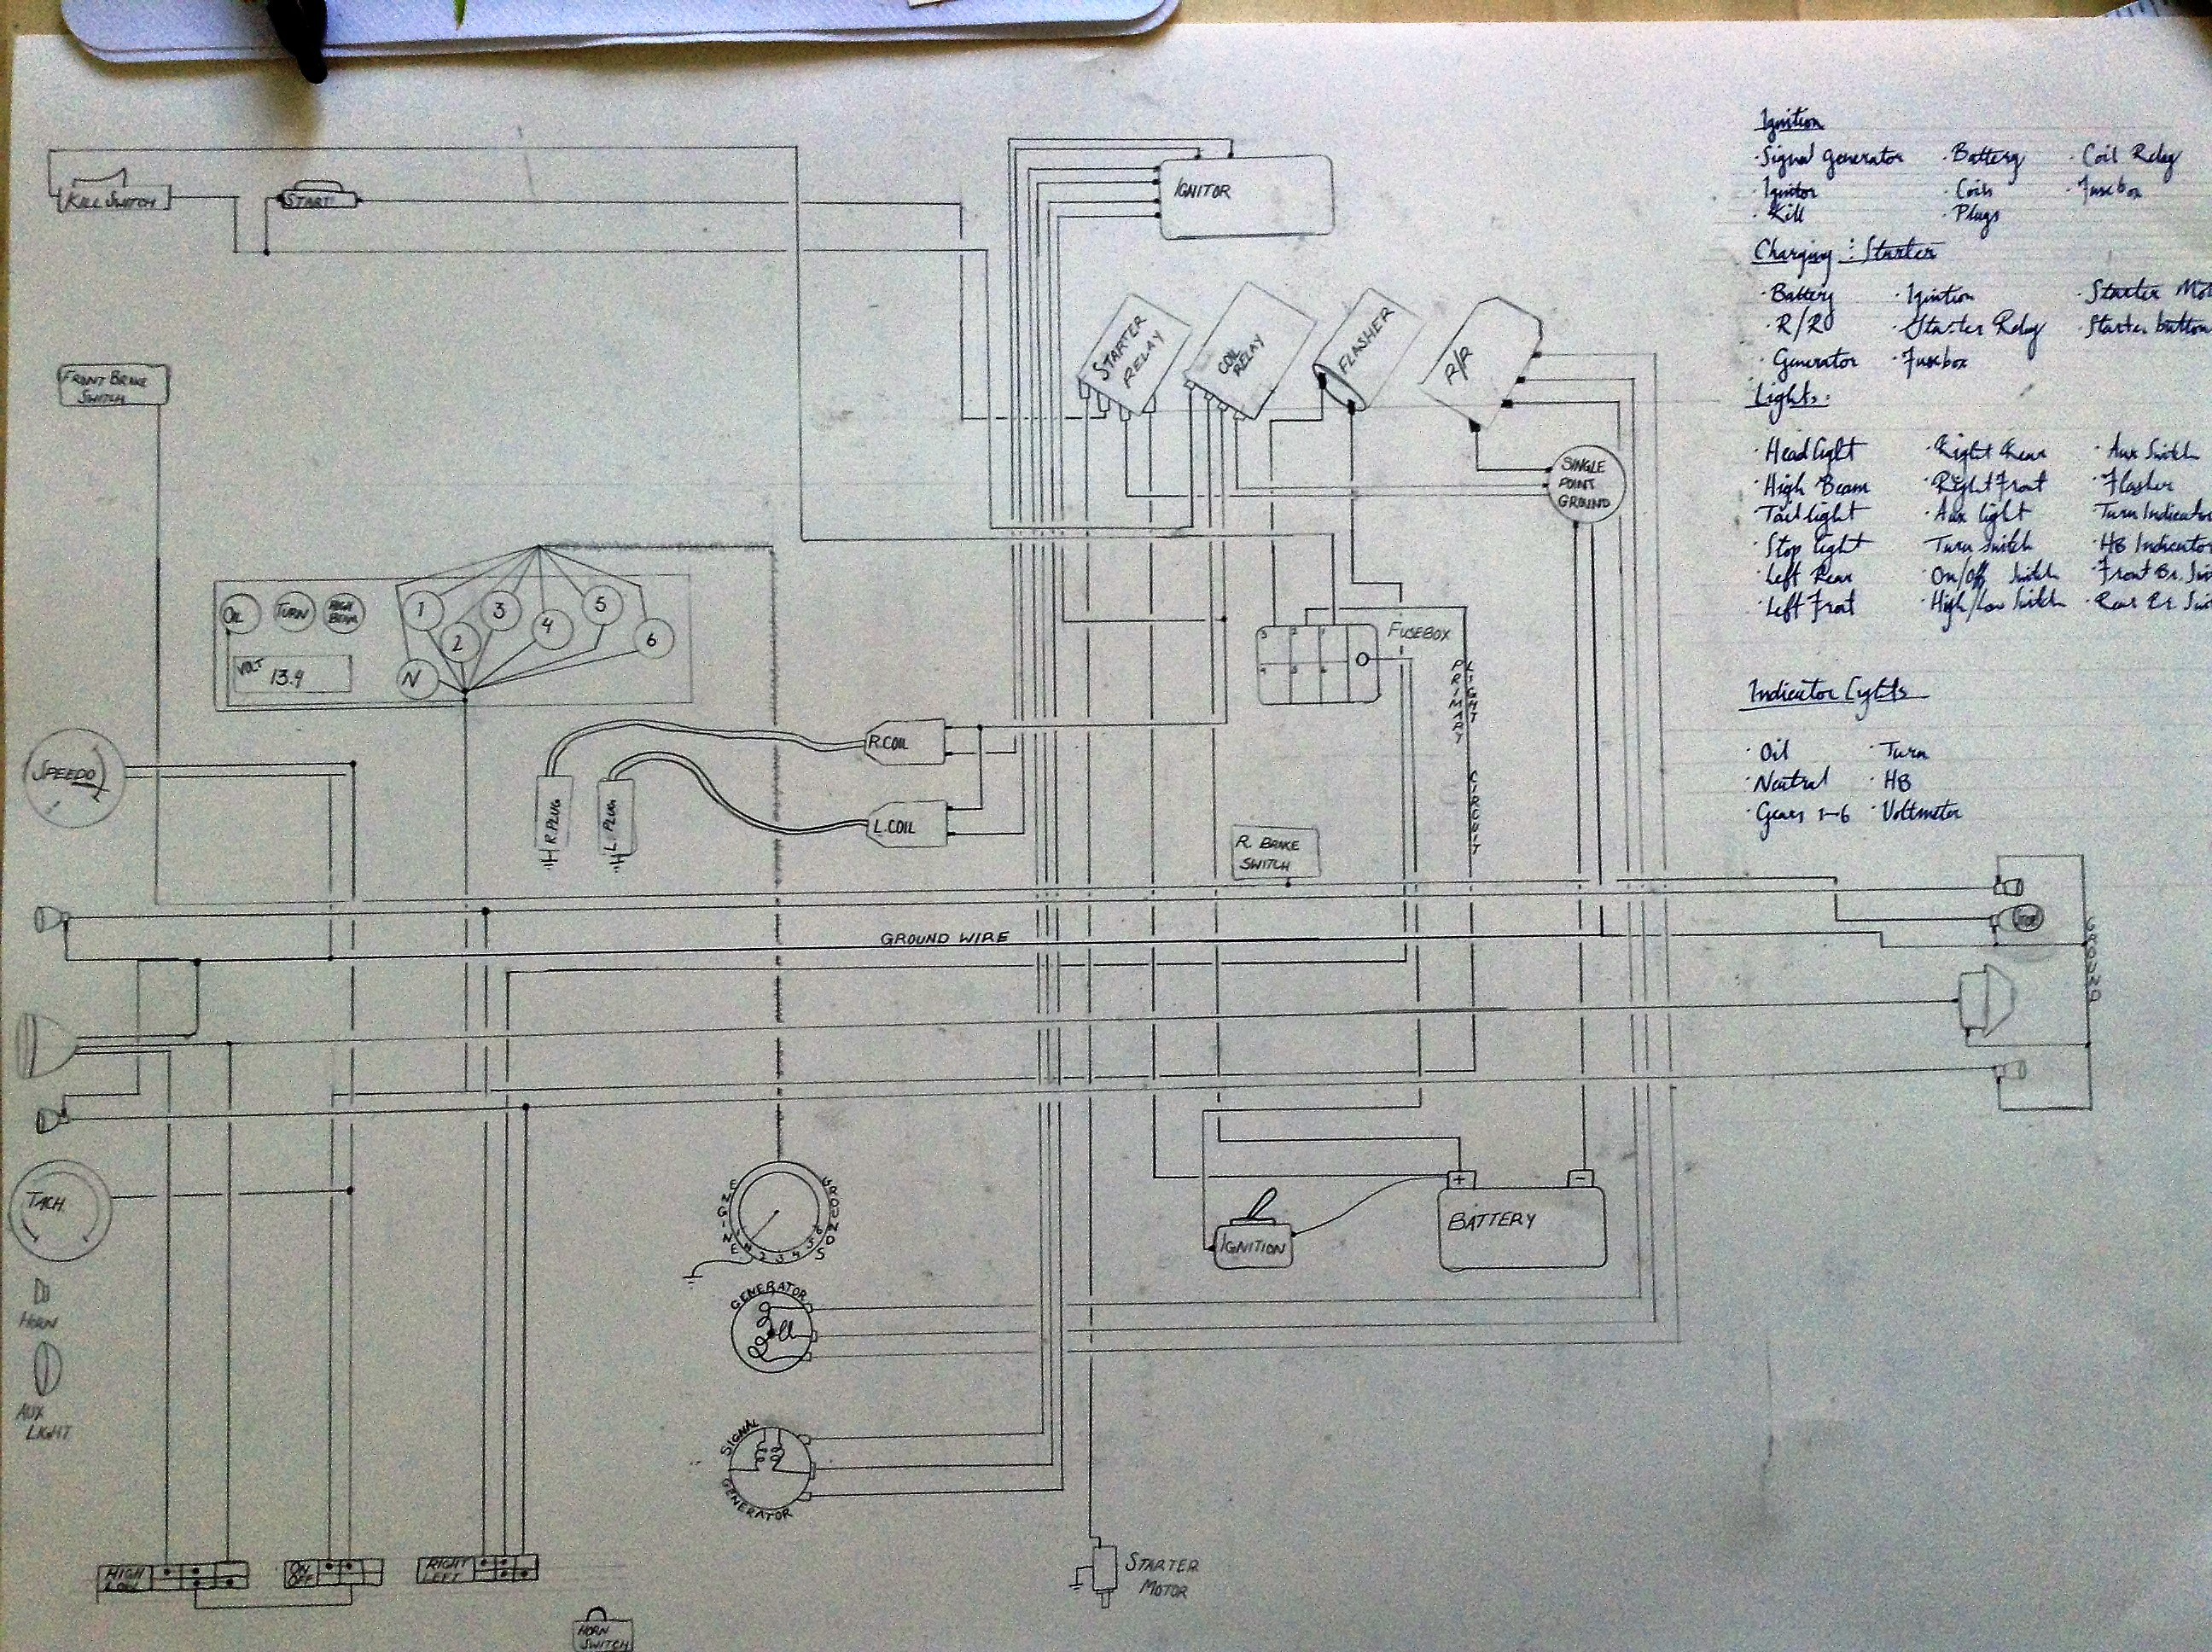 hight resolution of gs450 wiring diagram u2013 gs450liebelow is a tutorial on building a wiring harness for your